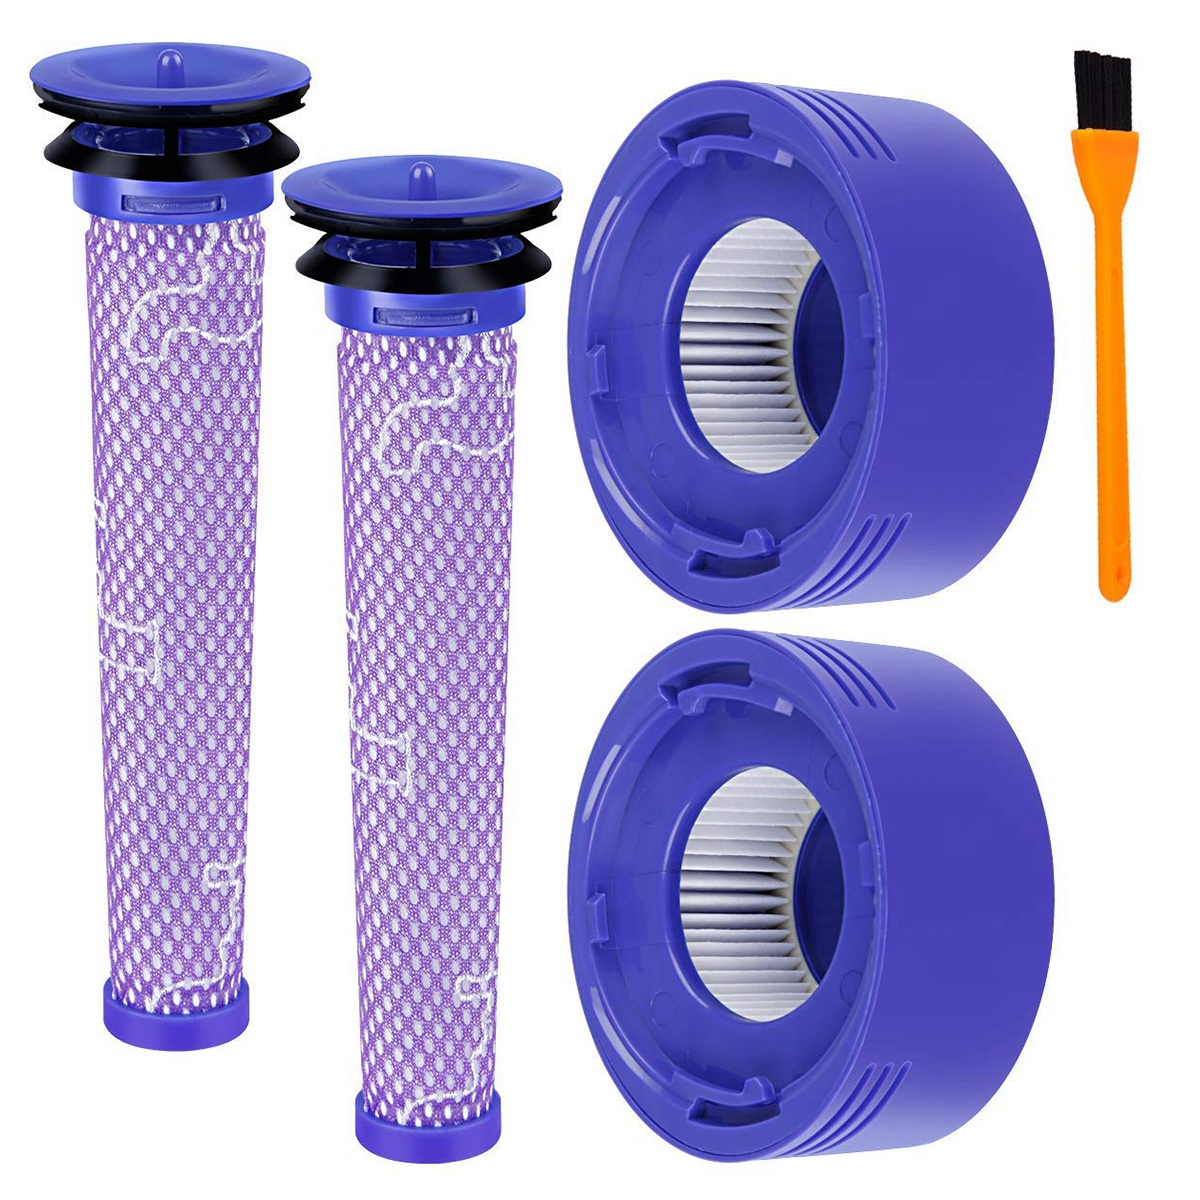 2 Pack Replacement for Dyson V8 Pre Filter + HEPA Post Filter, Compatible Dyson V7 V8 Animal Absolute Cordless Vacuum for Pre-